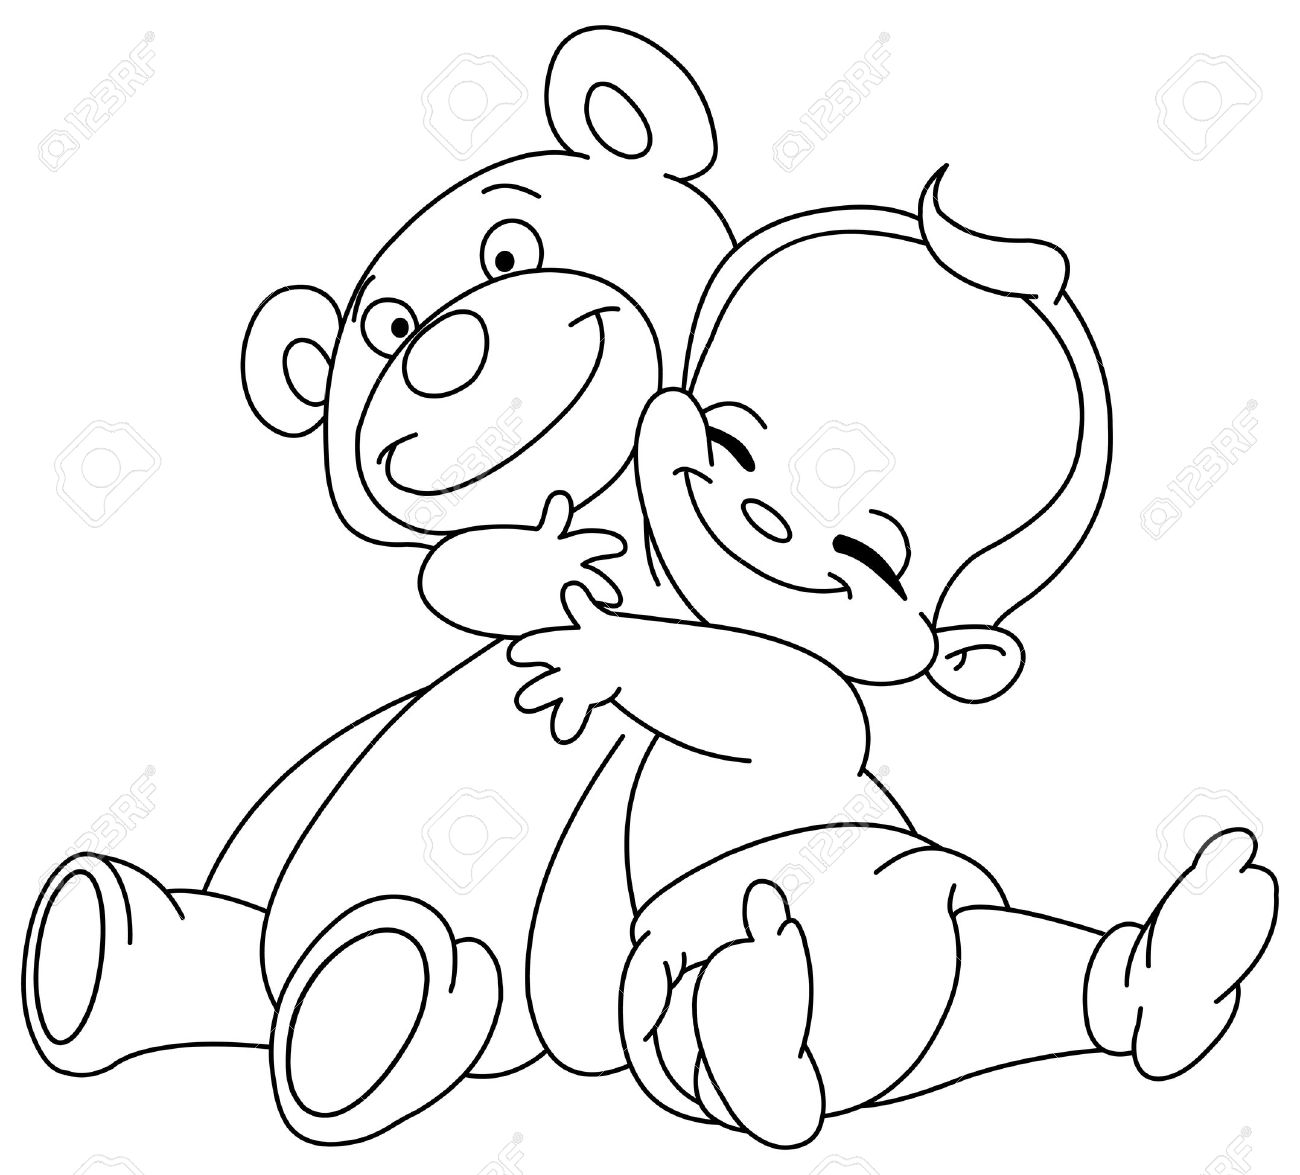 1300x1175 Outlined Cheerful Baby Hugging His Teddy Bear Royalty Free